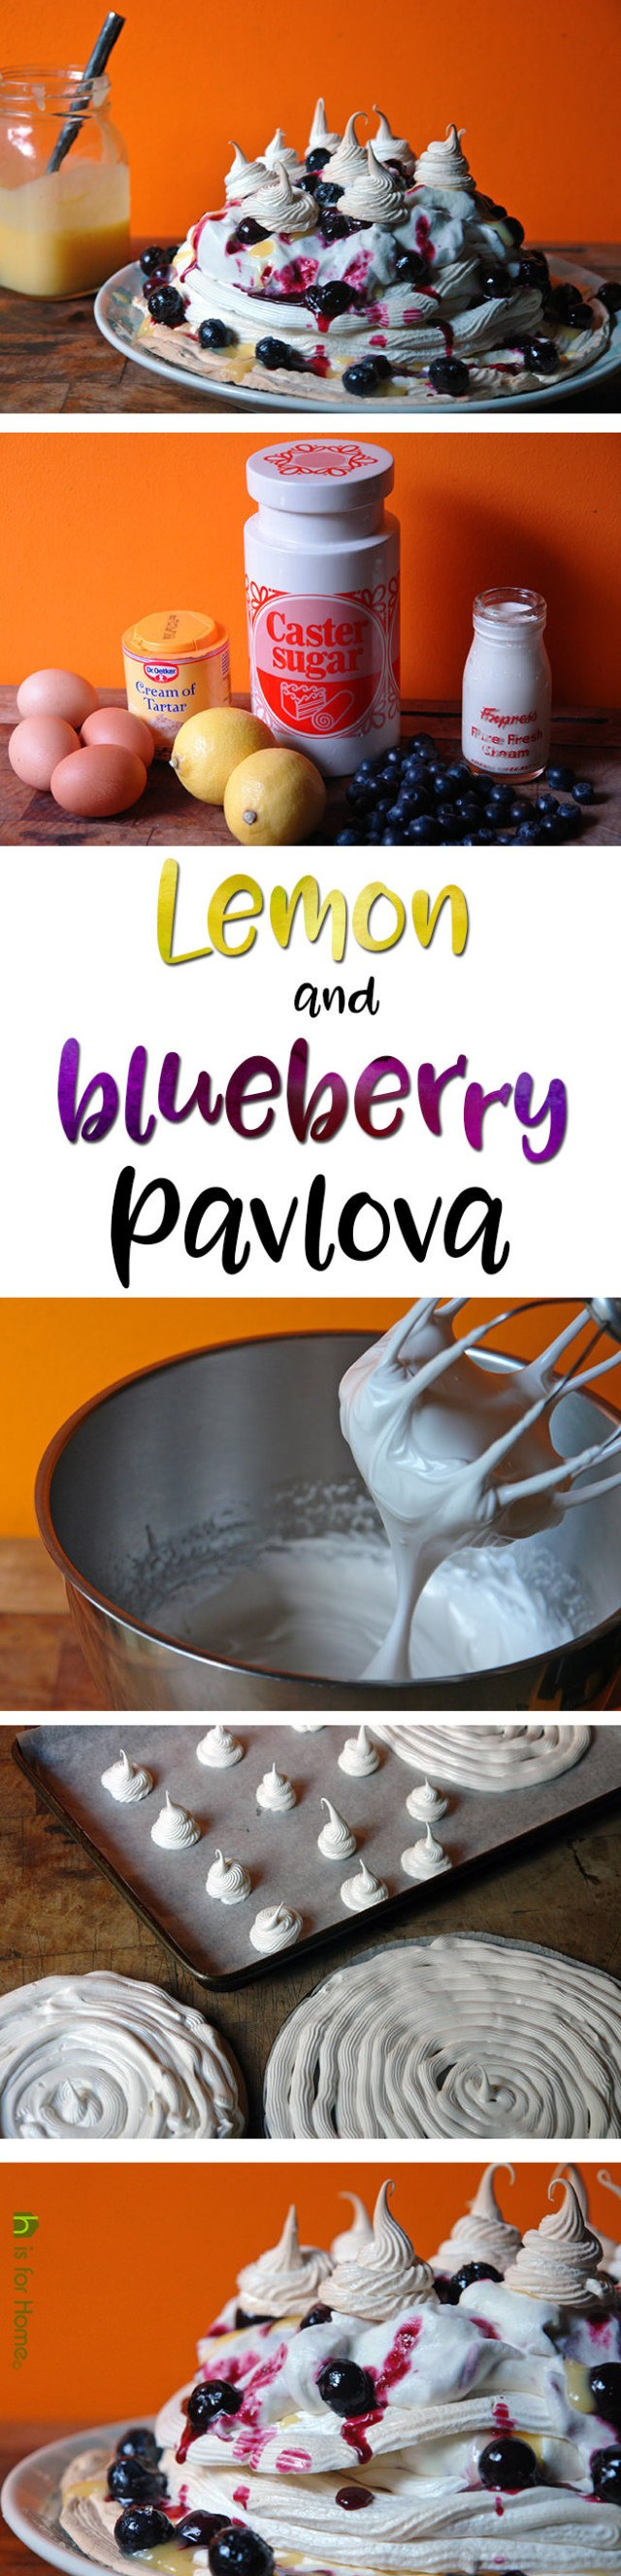 Home-made lemon and blueberry pavlova | H is for Home